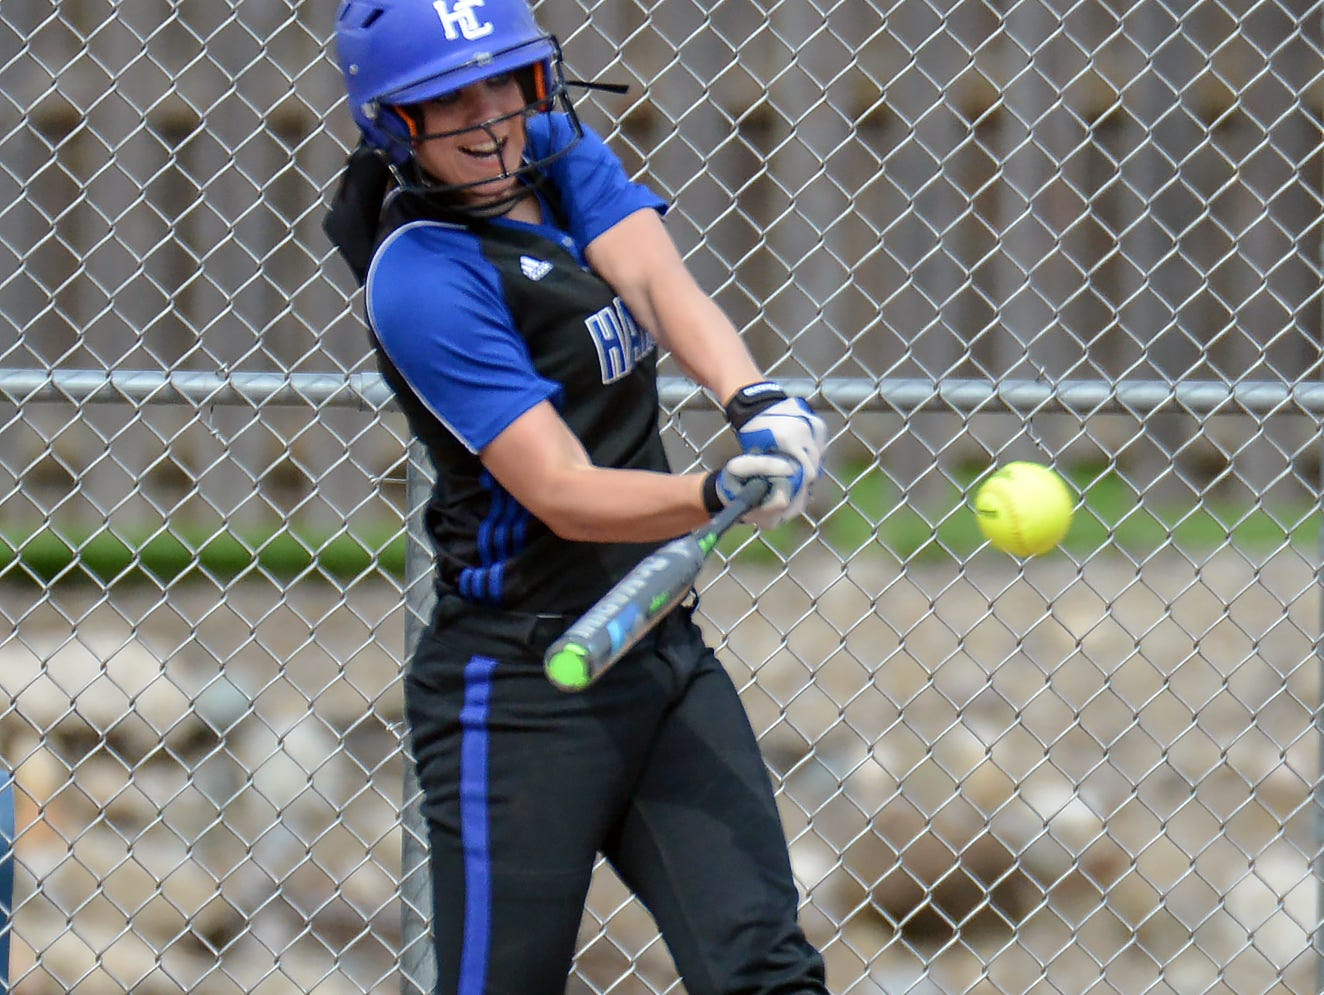 Taylor Shellenberger of Harper Creek during a game earlier this season. Harper Creek has won the All-City softball title three years in a row.